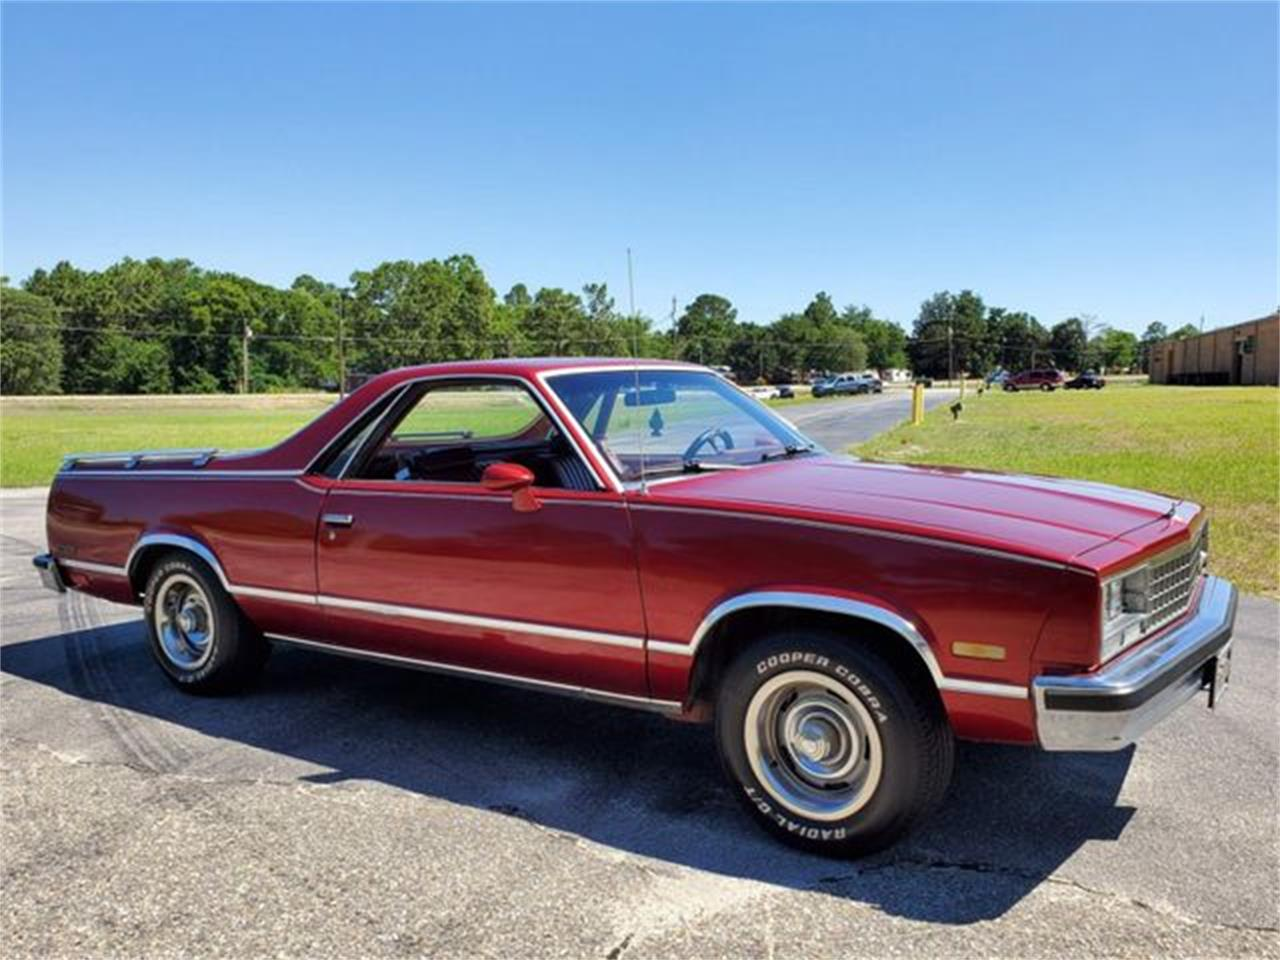 1983 Chevrolet El Camino (CC-1238858) for sale in Hope Mills, North Carolina